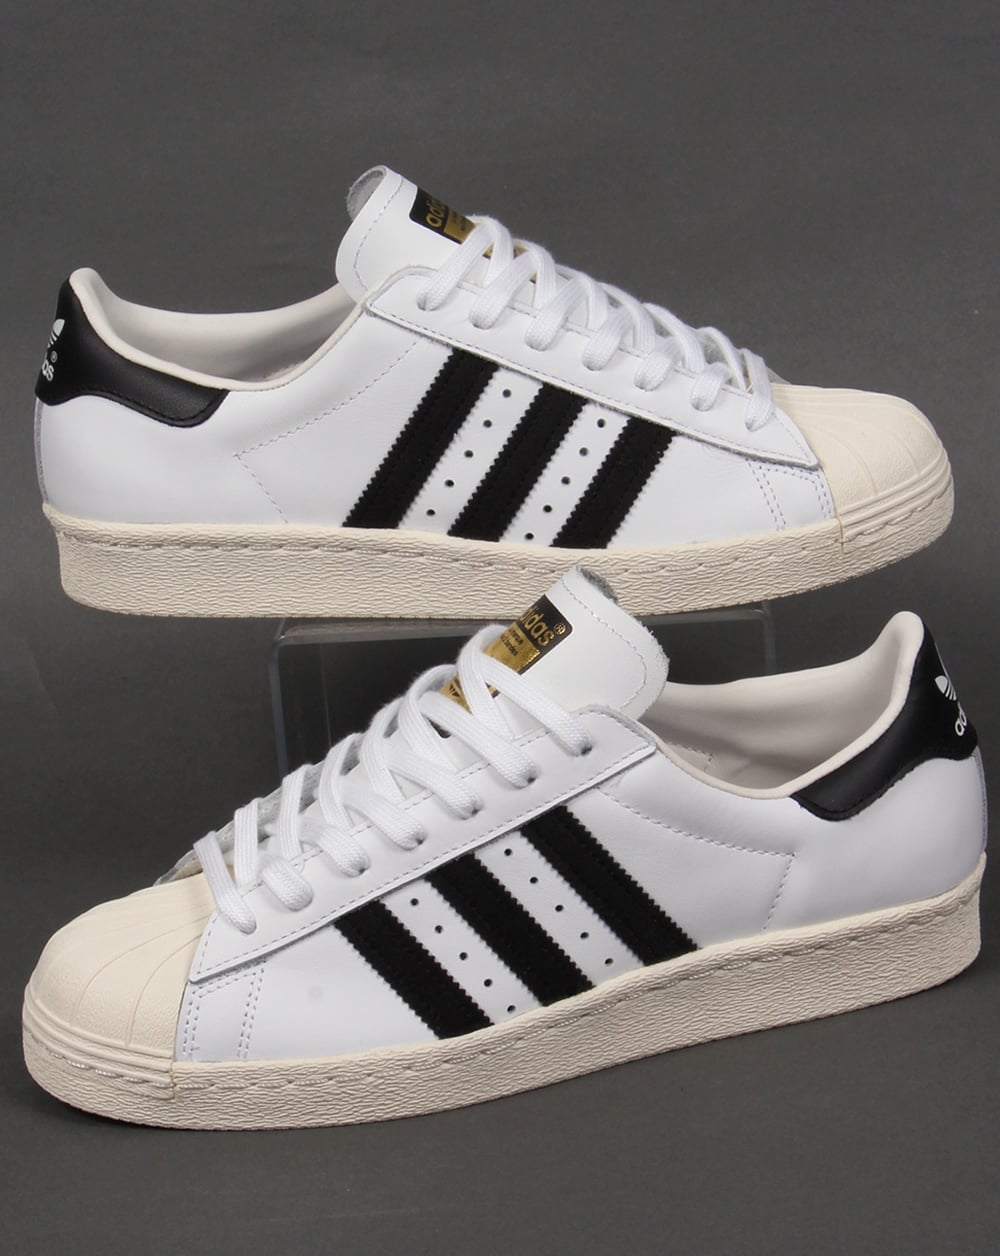 Adidas Superstar 80s Trainers White/Black